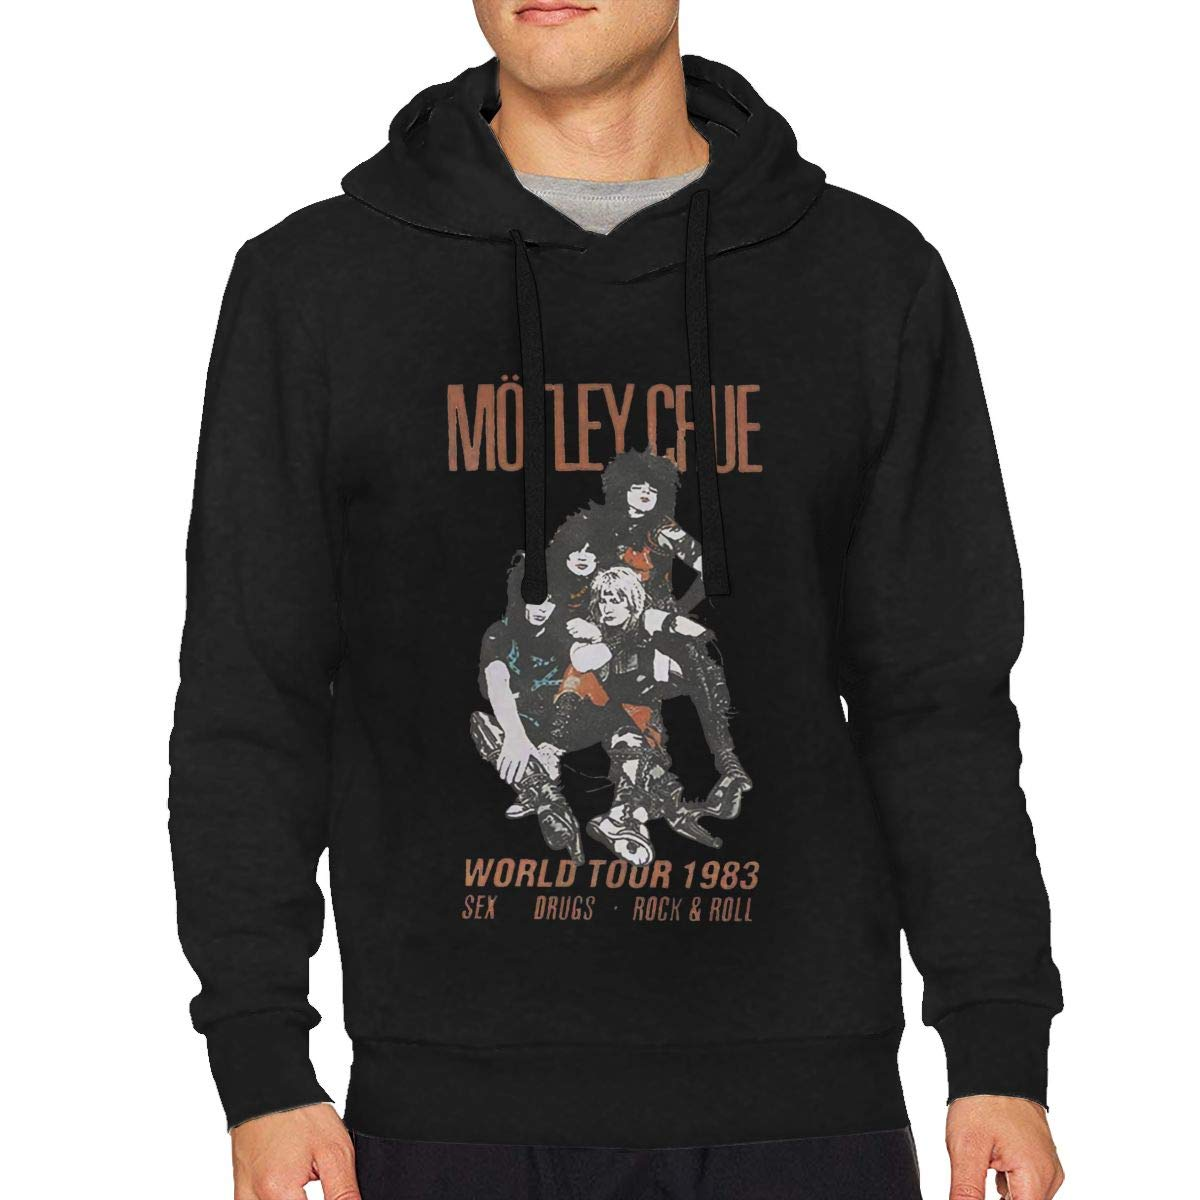 Men's Motley Crue T Shirt Distressed Vintage World Tour Logo Sweatshirt